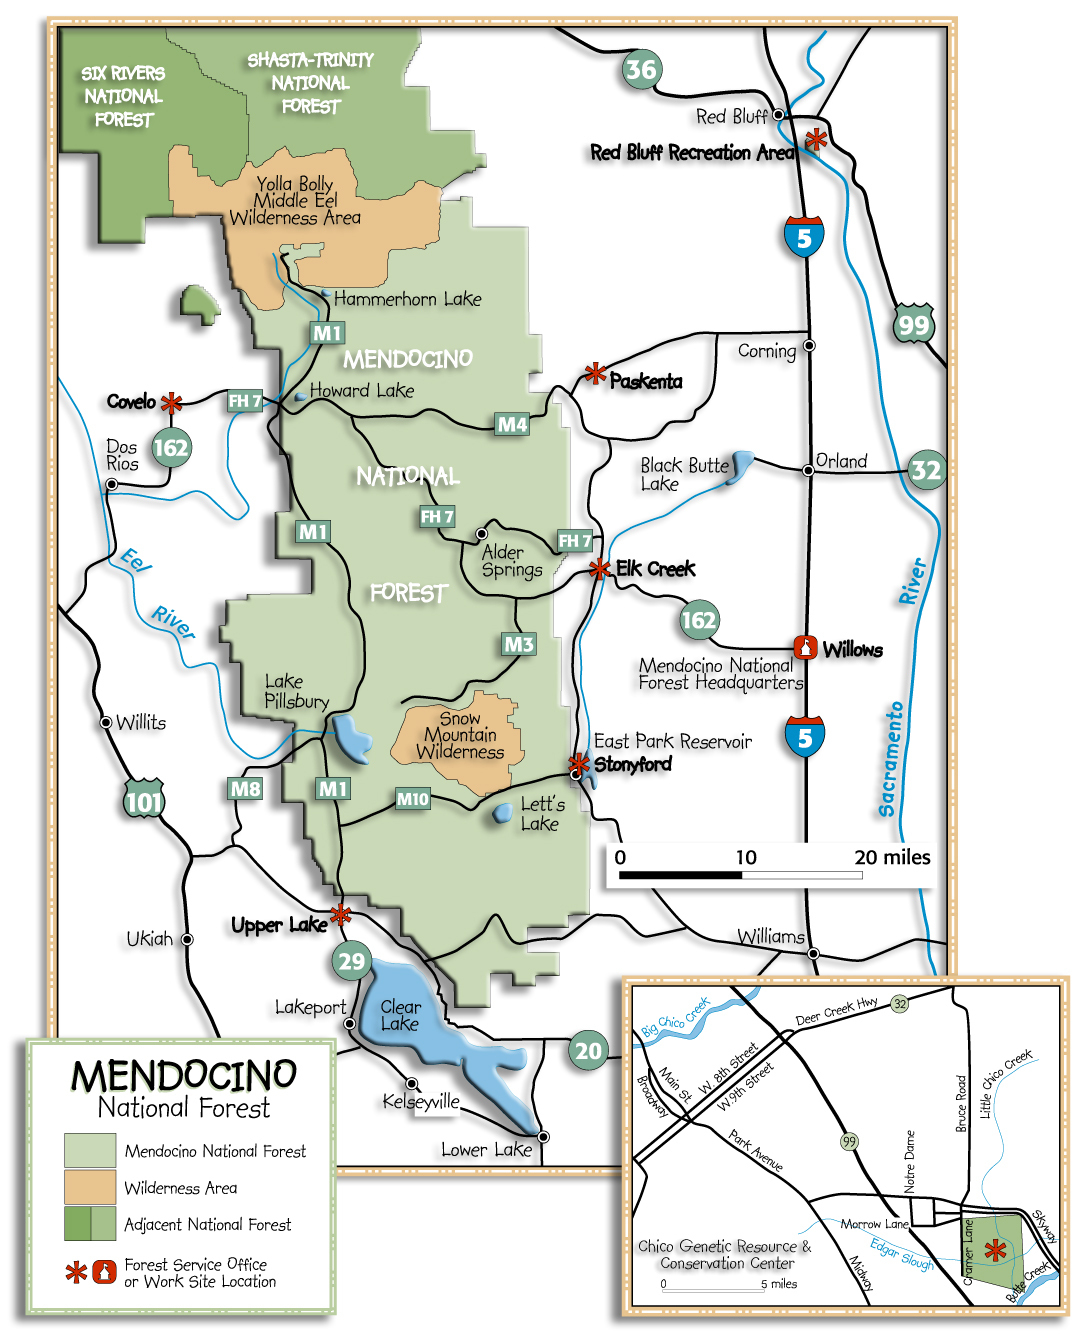 Mendocino National Forest - Maps & Publications - California Wilderness Map